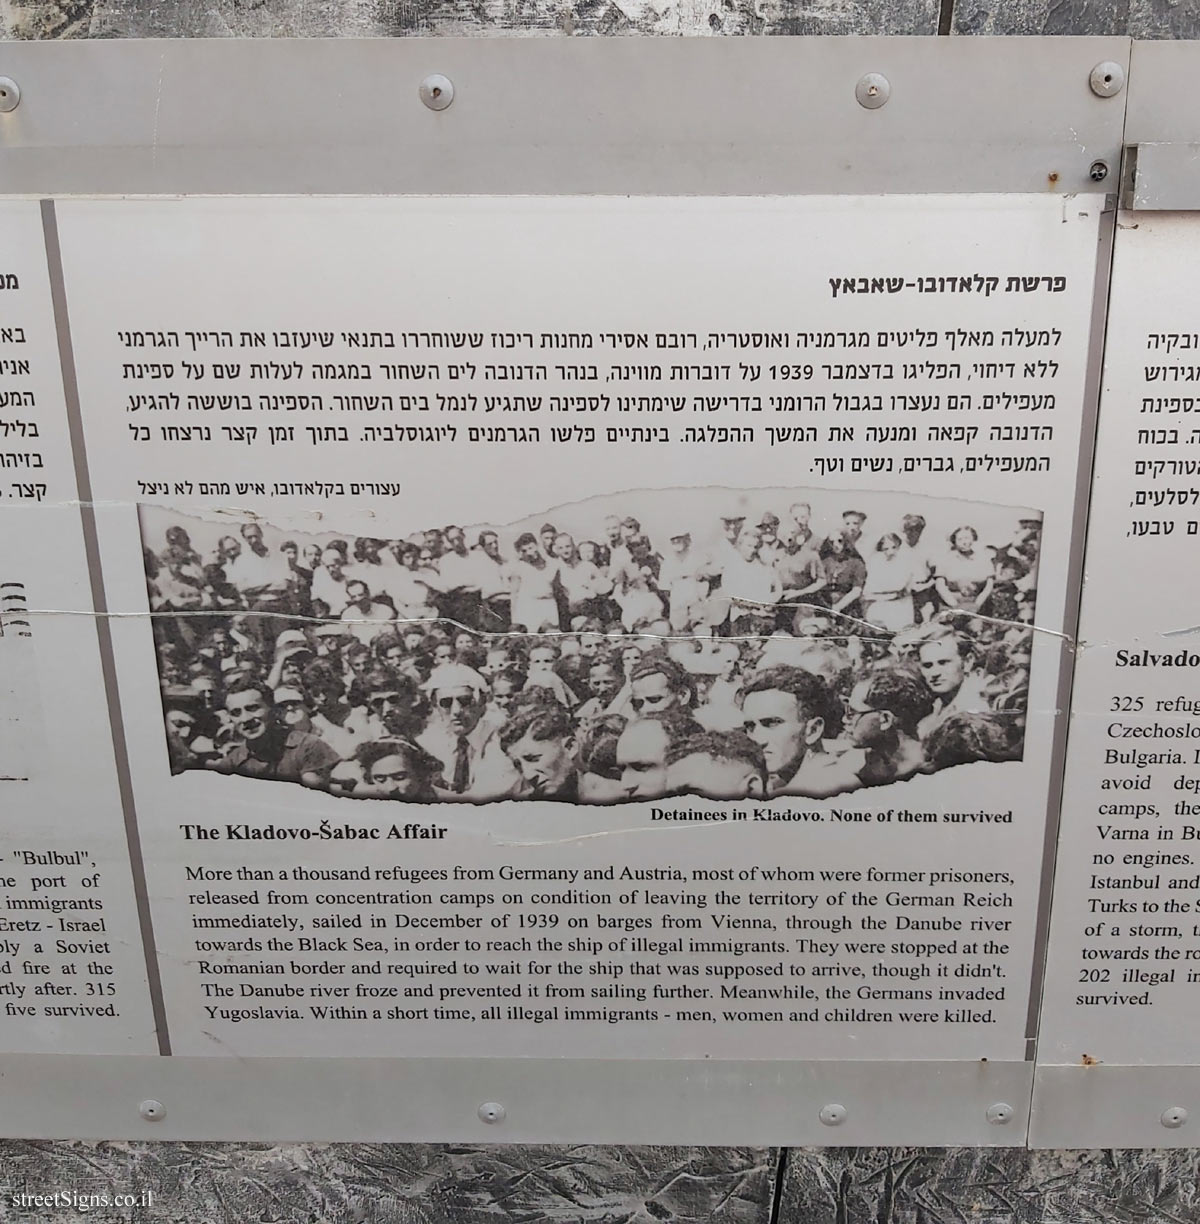 Tel Aviv - London Garden - The story of the illegal immigration - The Kladovo-Sabac Affair